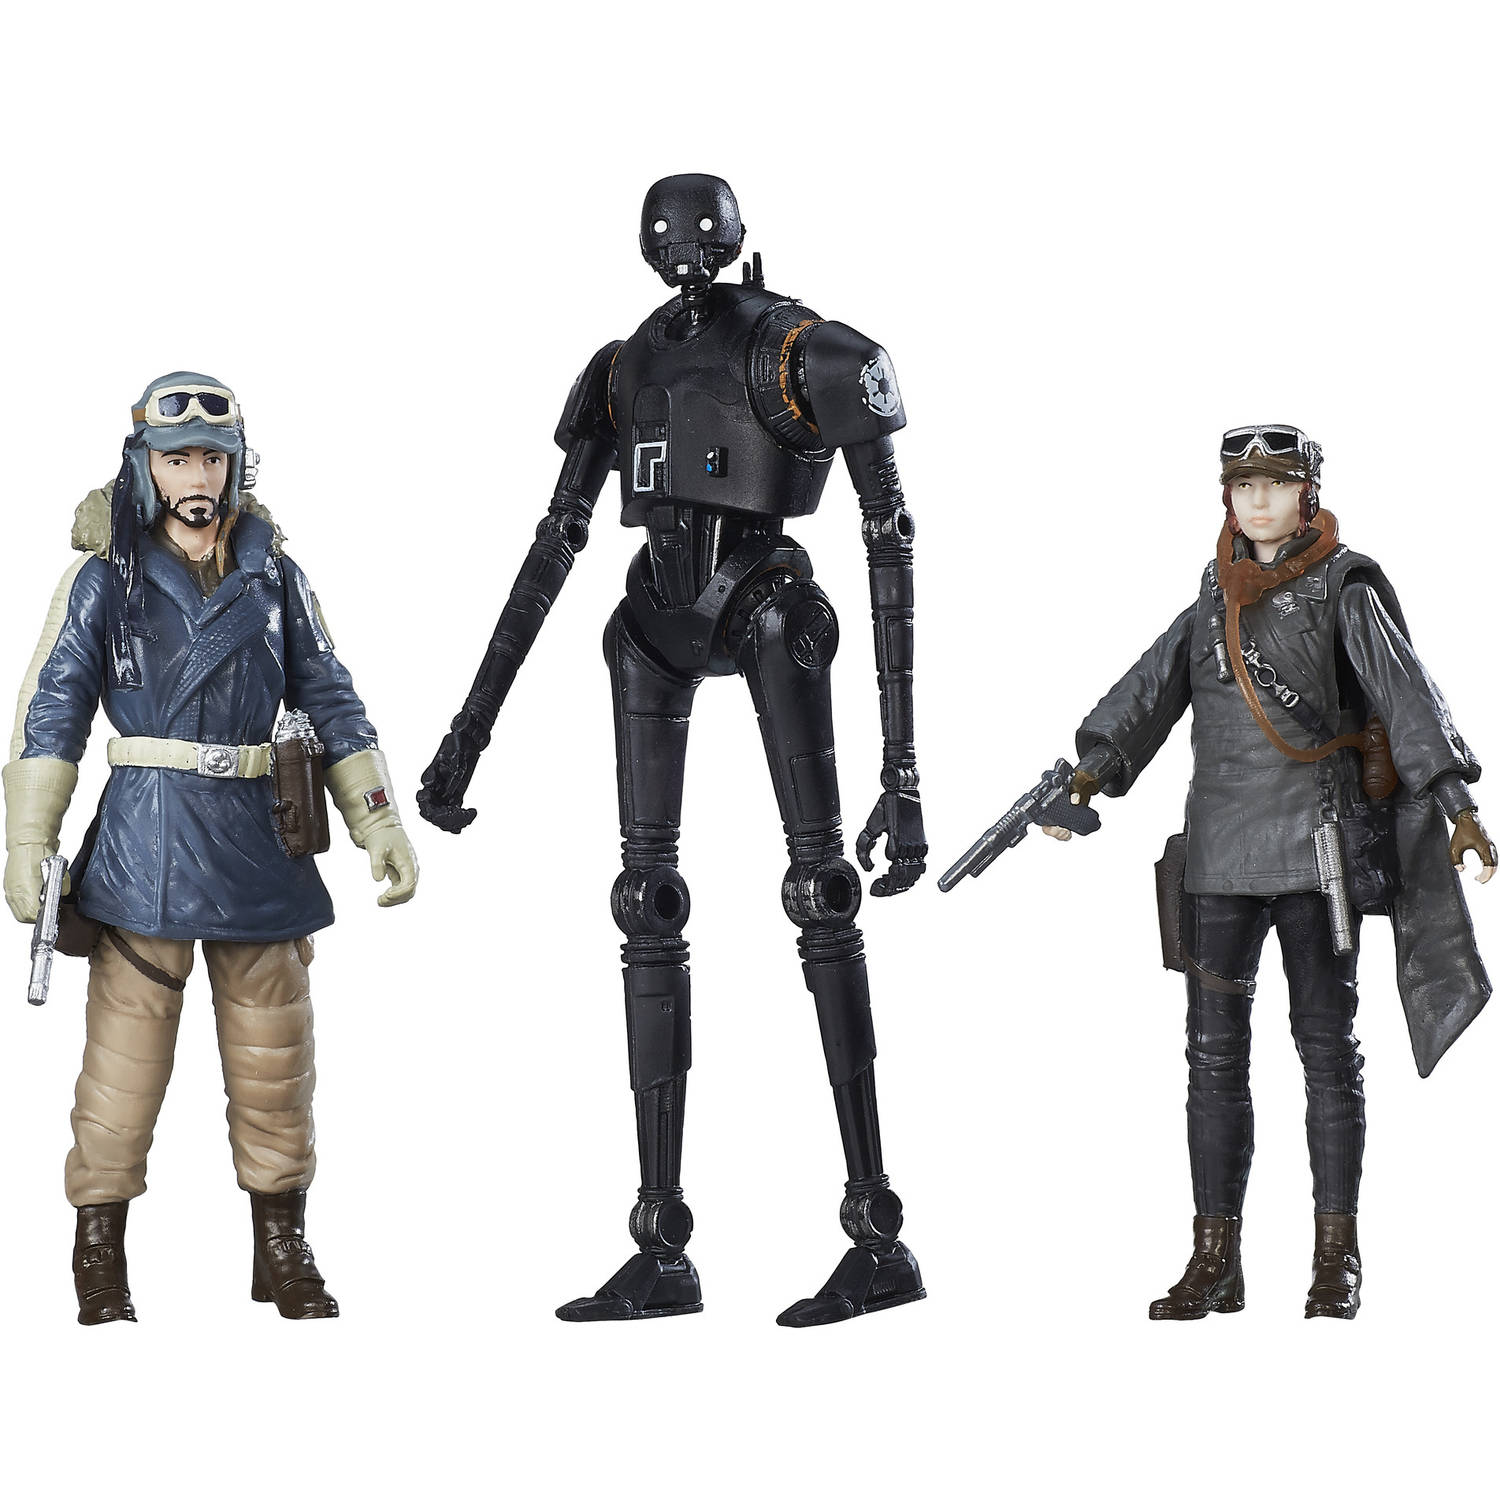 Star Wars Rogue One Rebel Figure 3pk, Walmart Exclusive